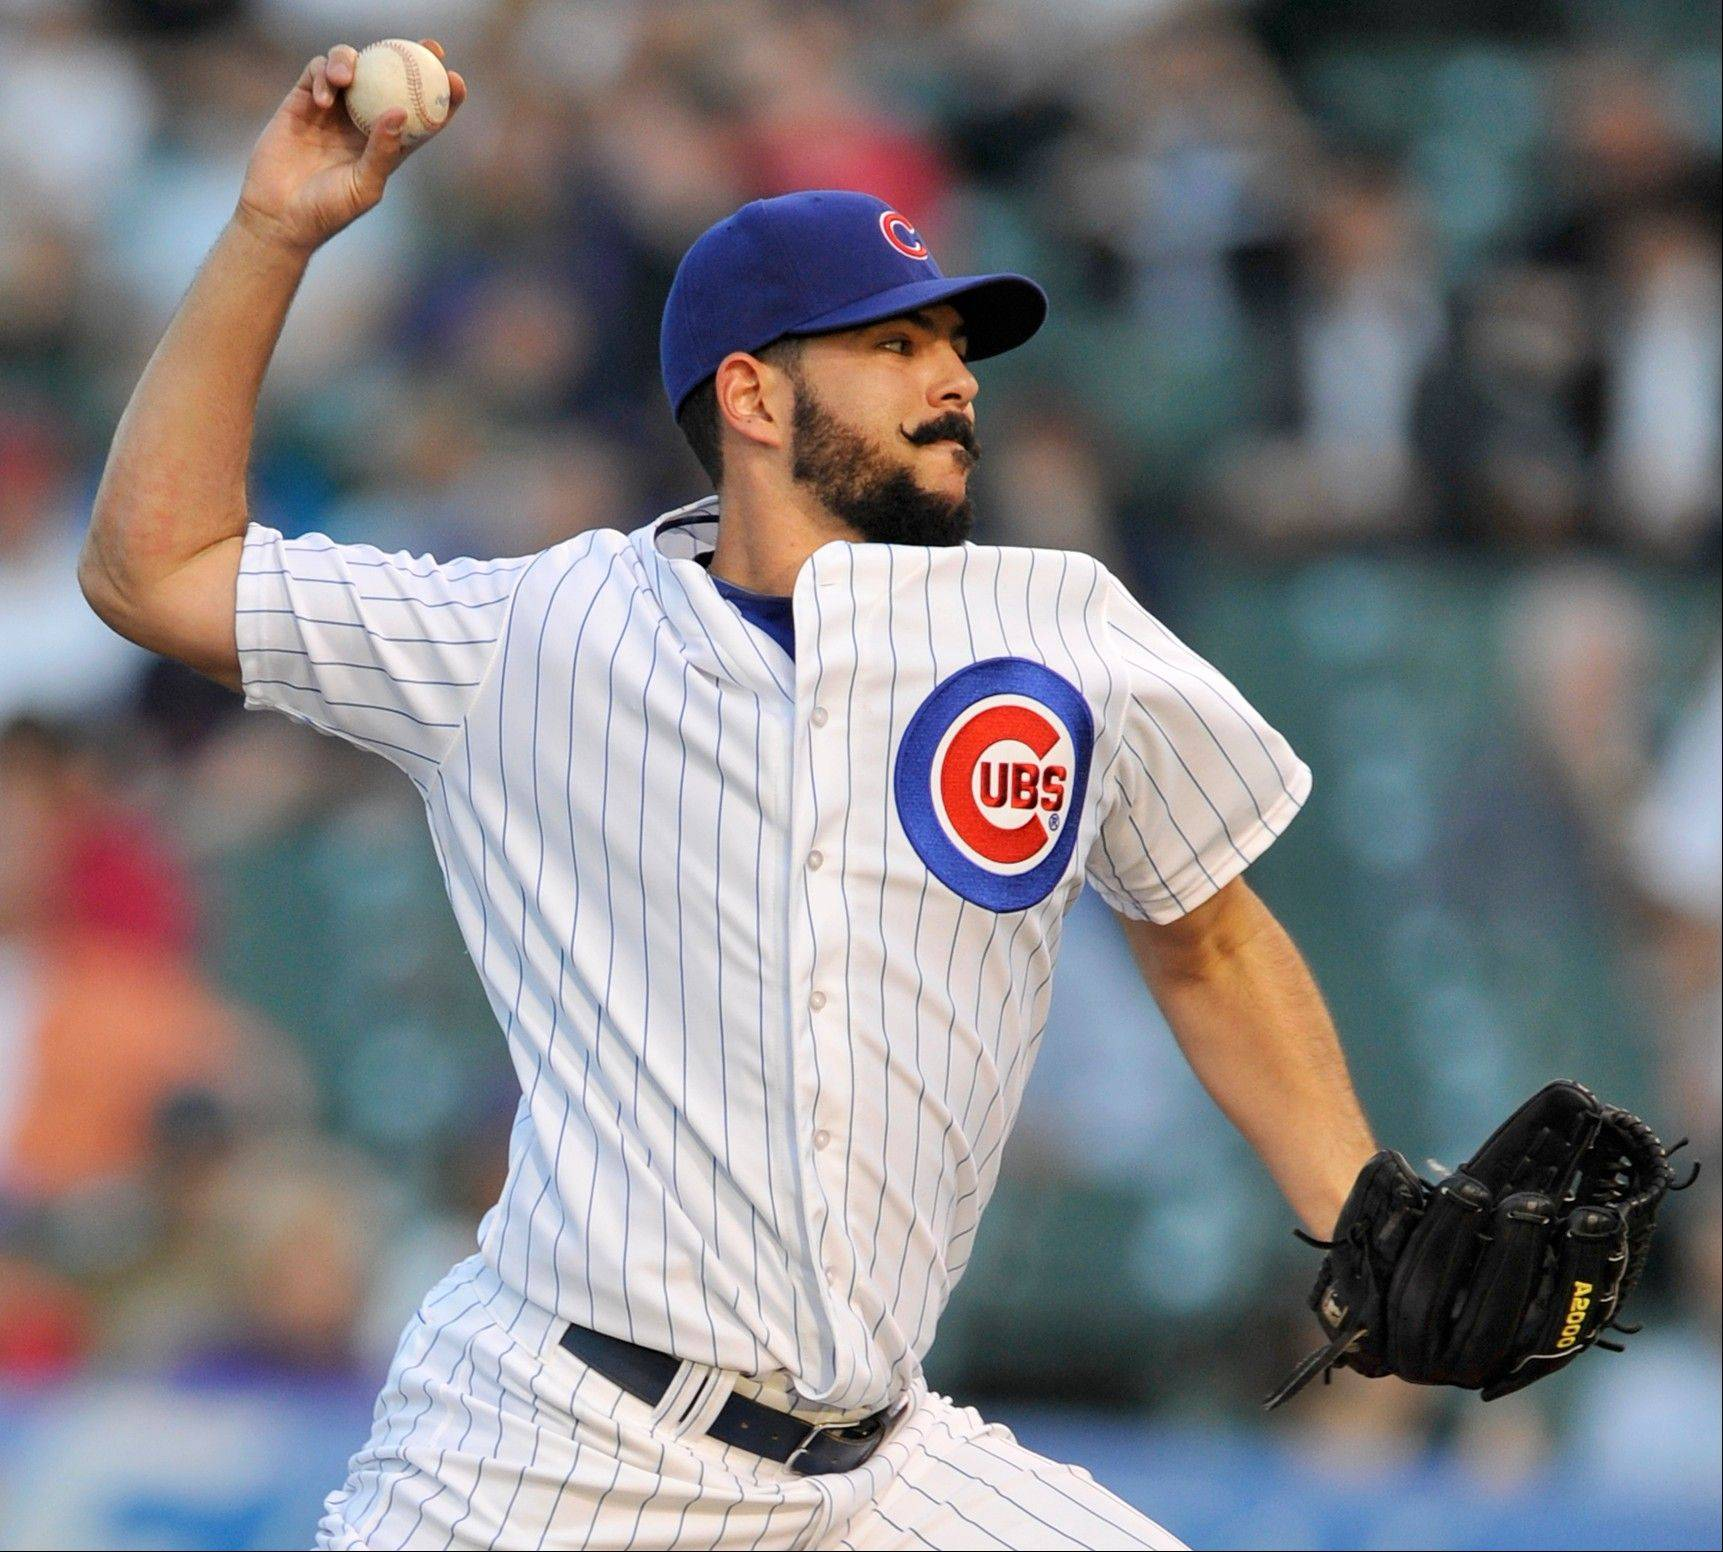 Chicago Cubs starter Carlos Villanueva delivers a pitch against the Colorado Rockies during the first inning of a baseball game in Chicago, Tuesday, May 14, 2013. (AP Photo/Paul Beaty)